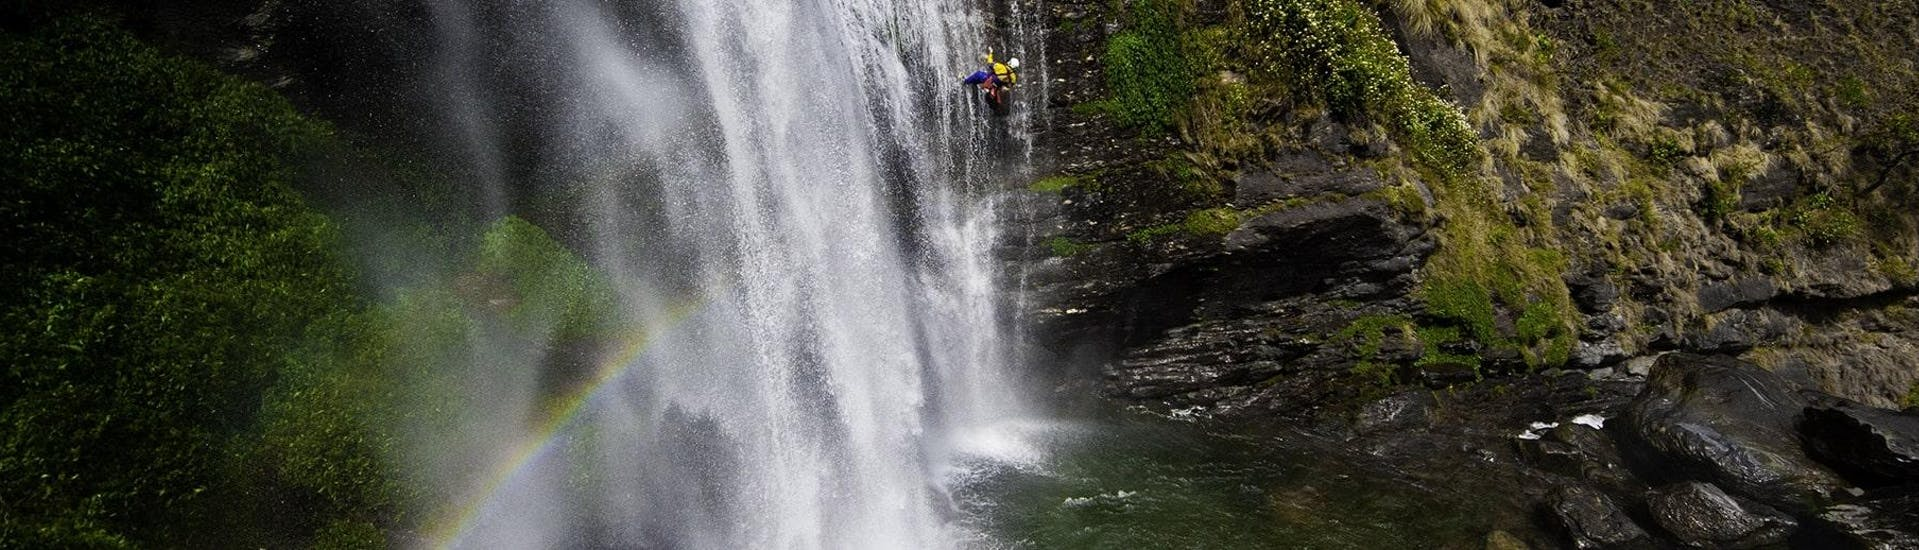 canyoning-full-day-bachelor-party-ossau-experience-canyon-hero